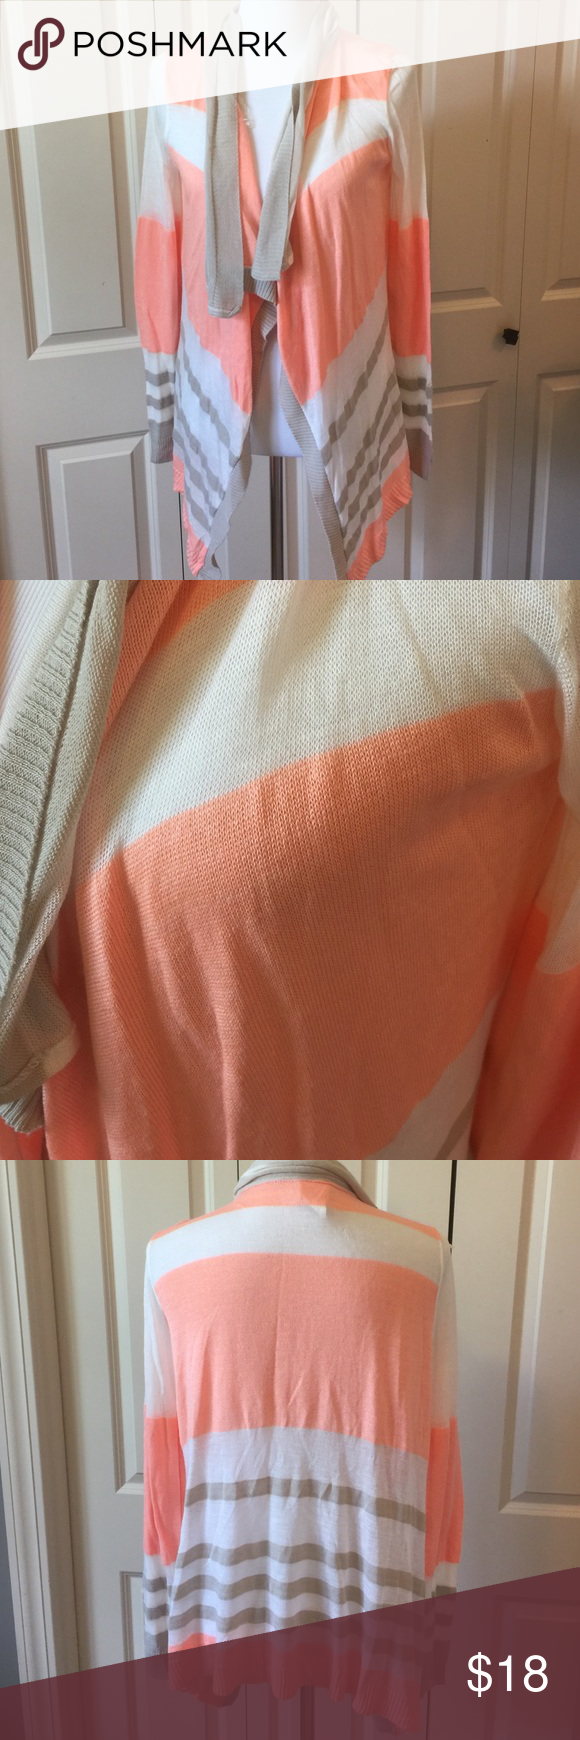 Peach and Tan Striped Open Front Cardigan One small flaw on the back shown in pic. Not noticeable at all. 100% acrylic Daytrip Sweaters Cardigans